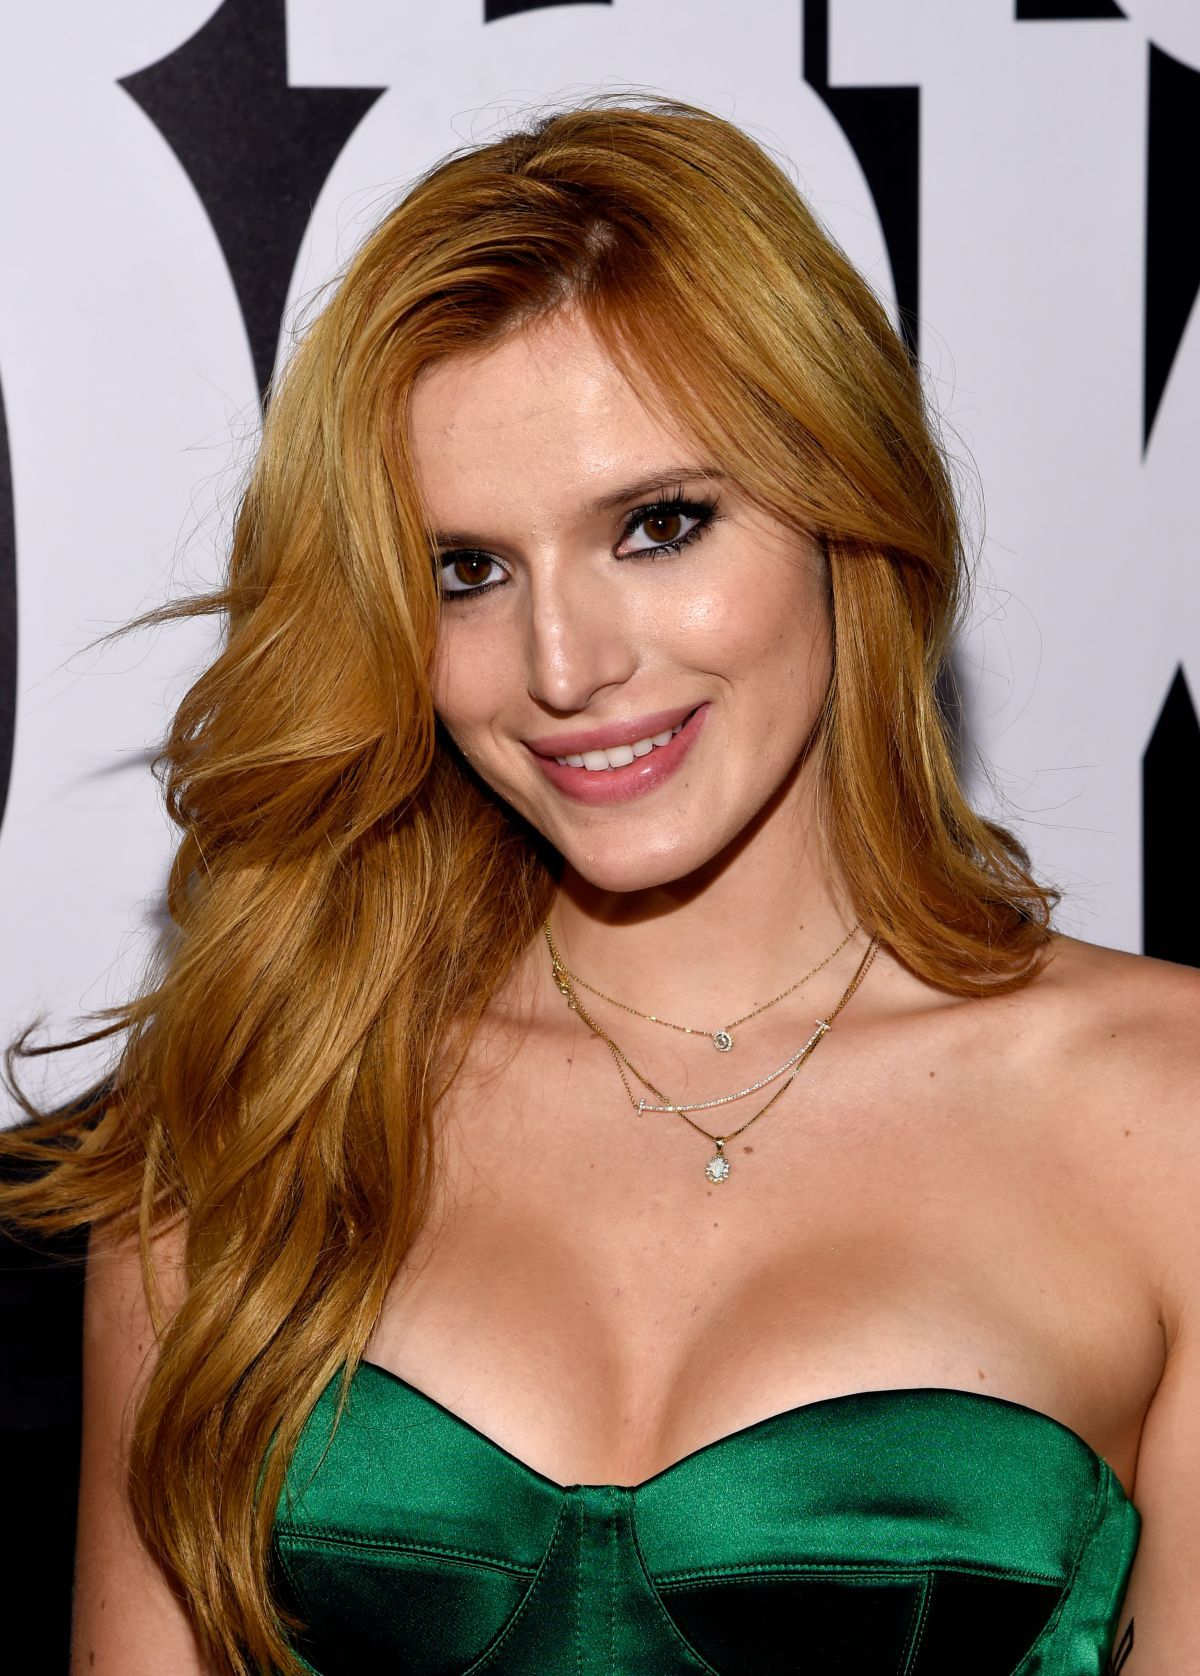 bella thorne instagram